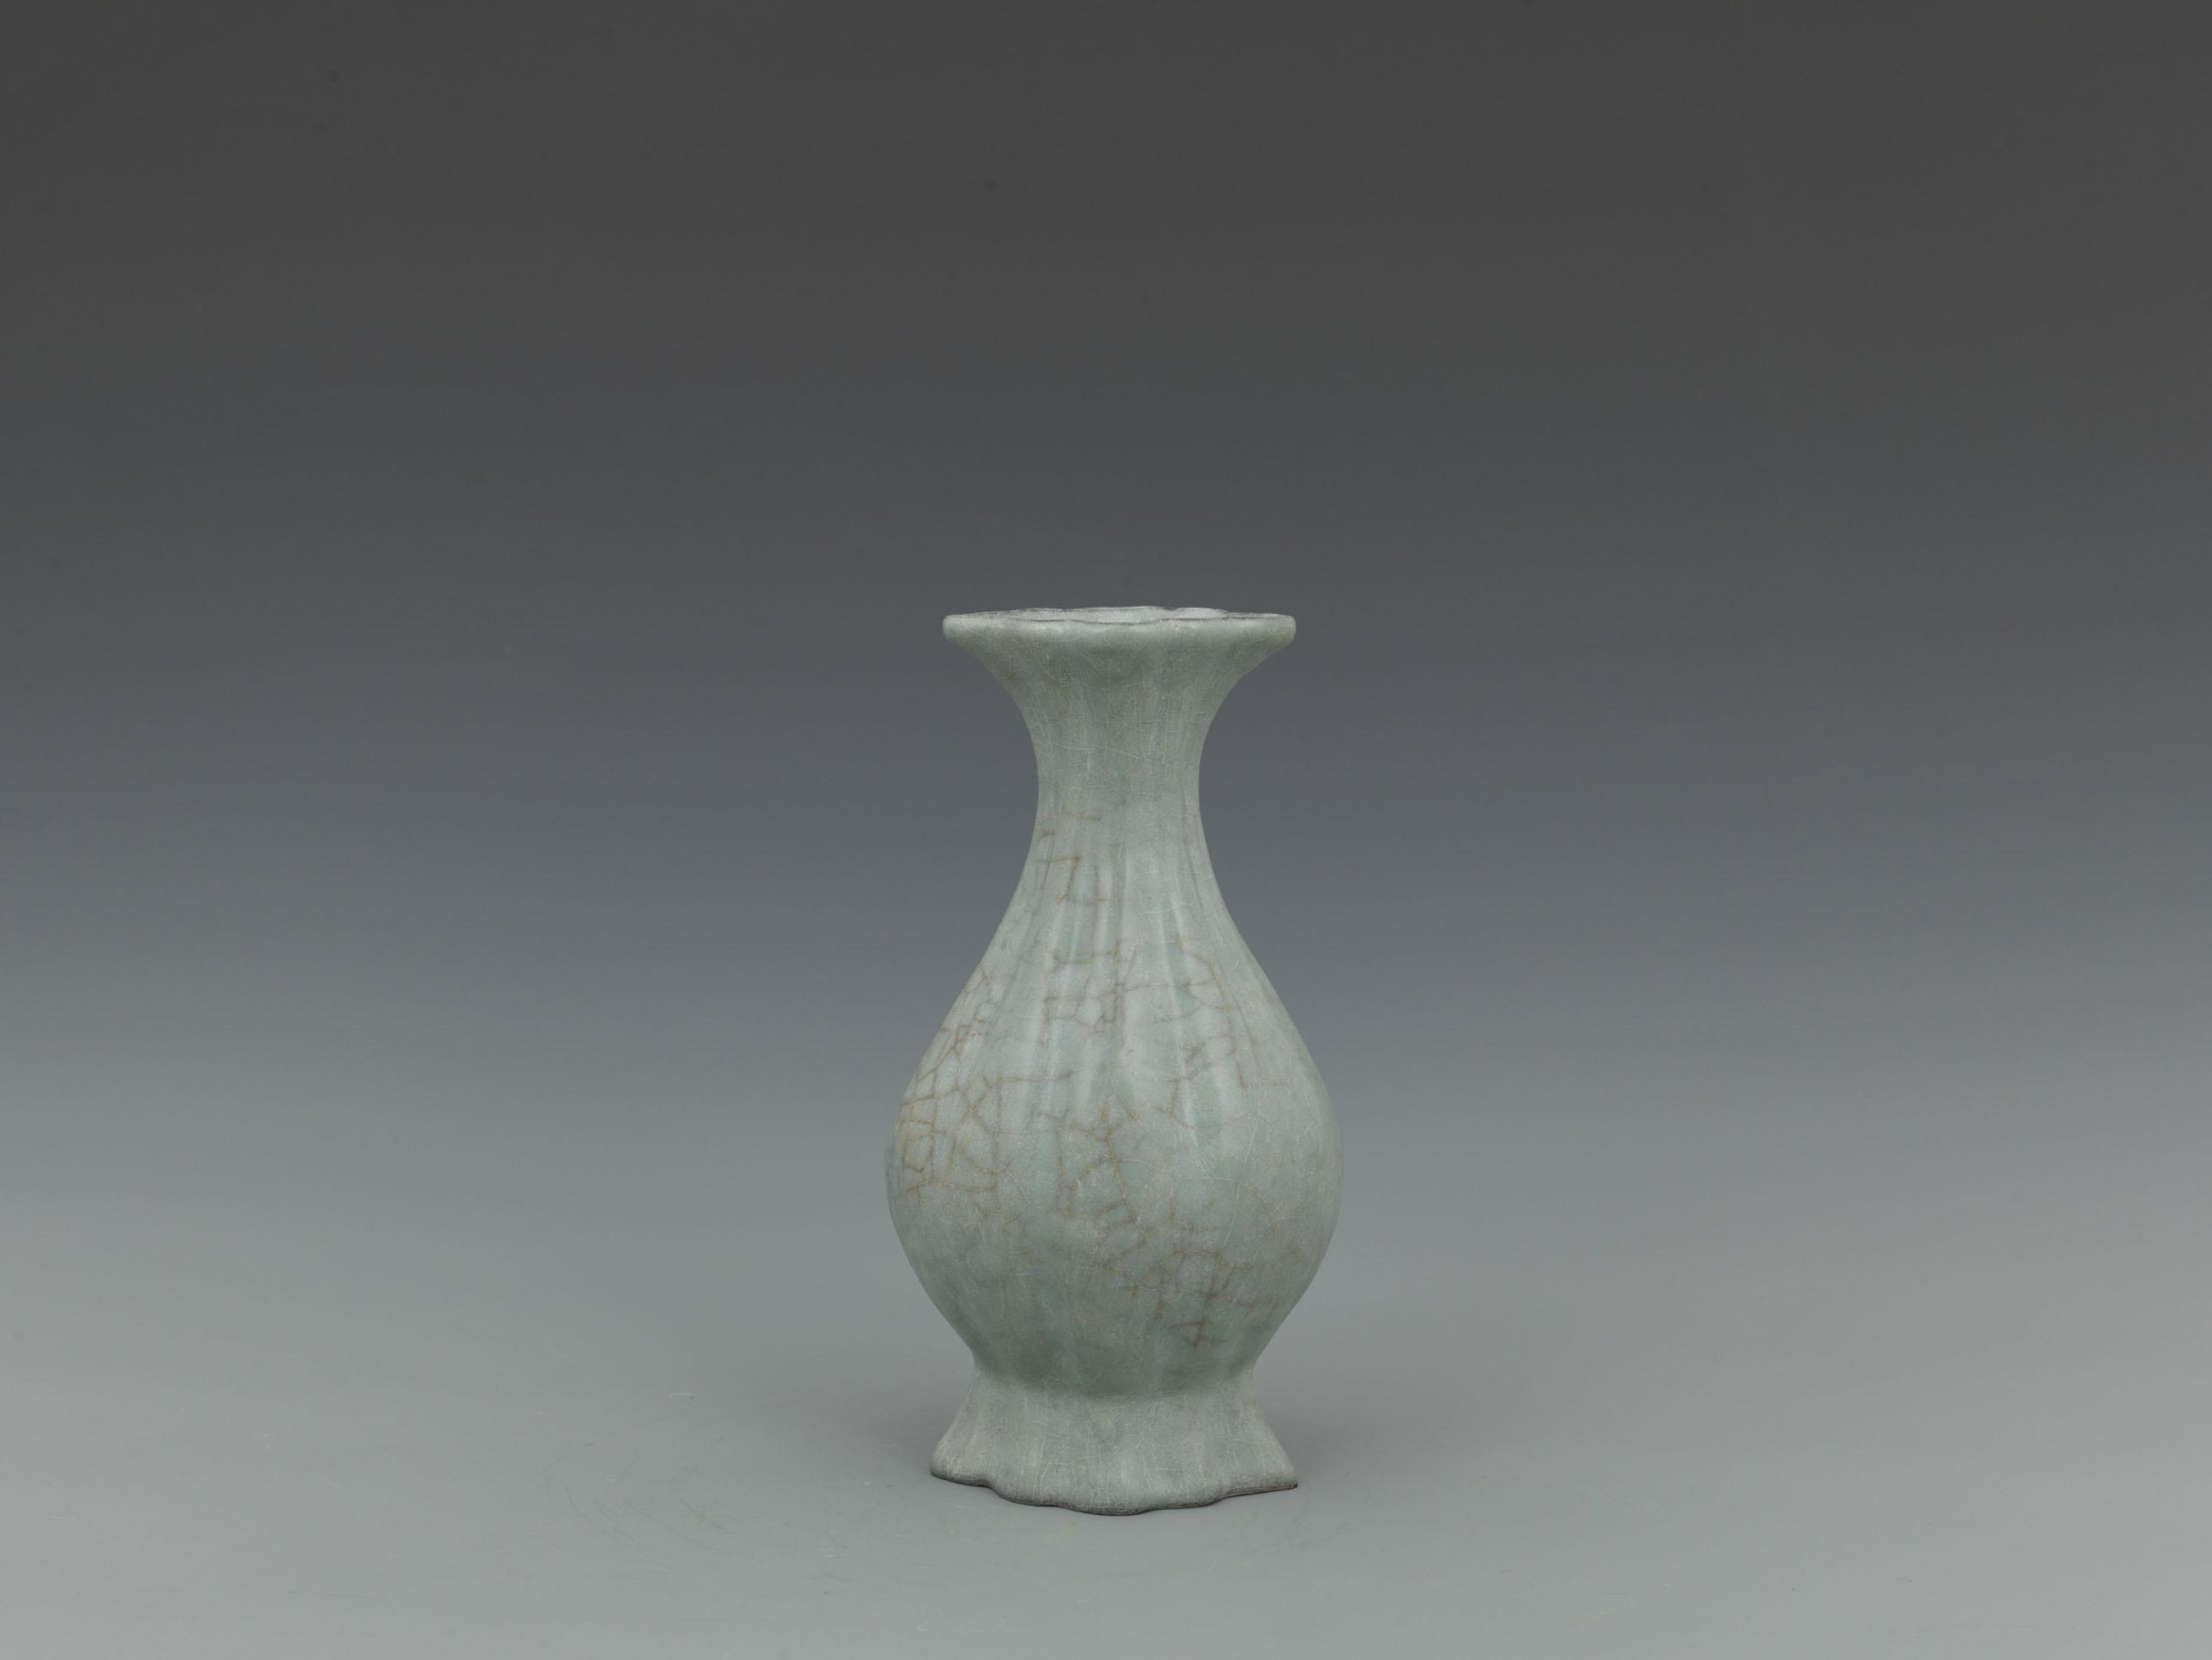 A Guan-Type Faceted Vase (Lot Number 1629)